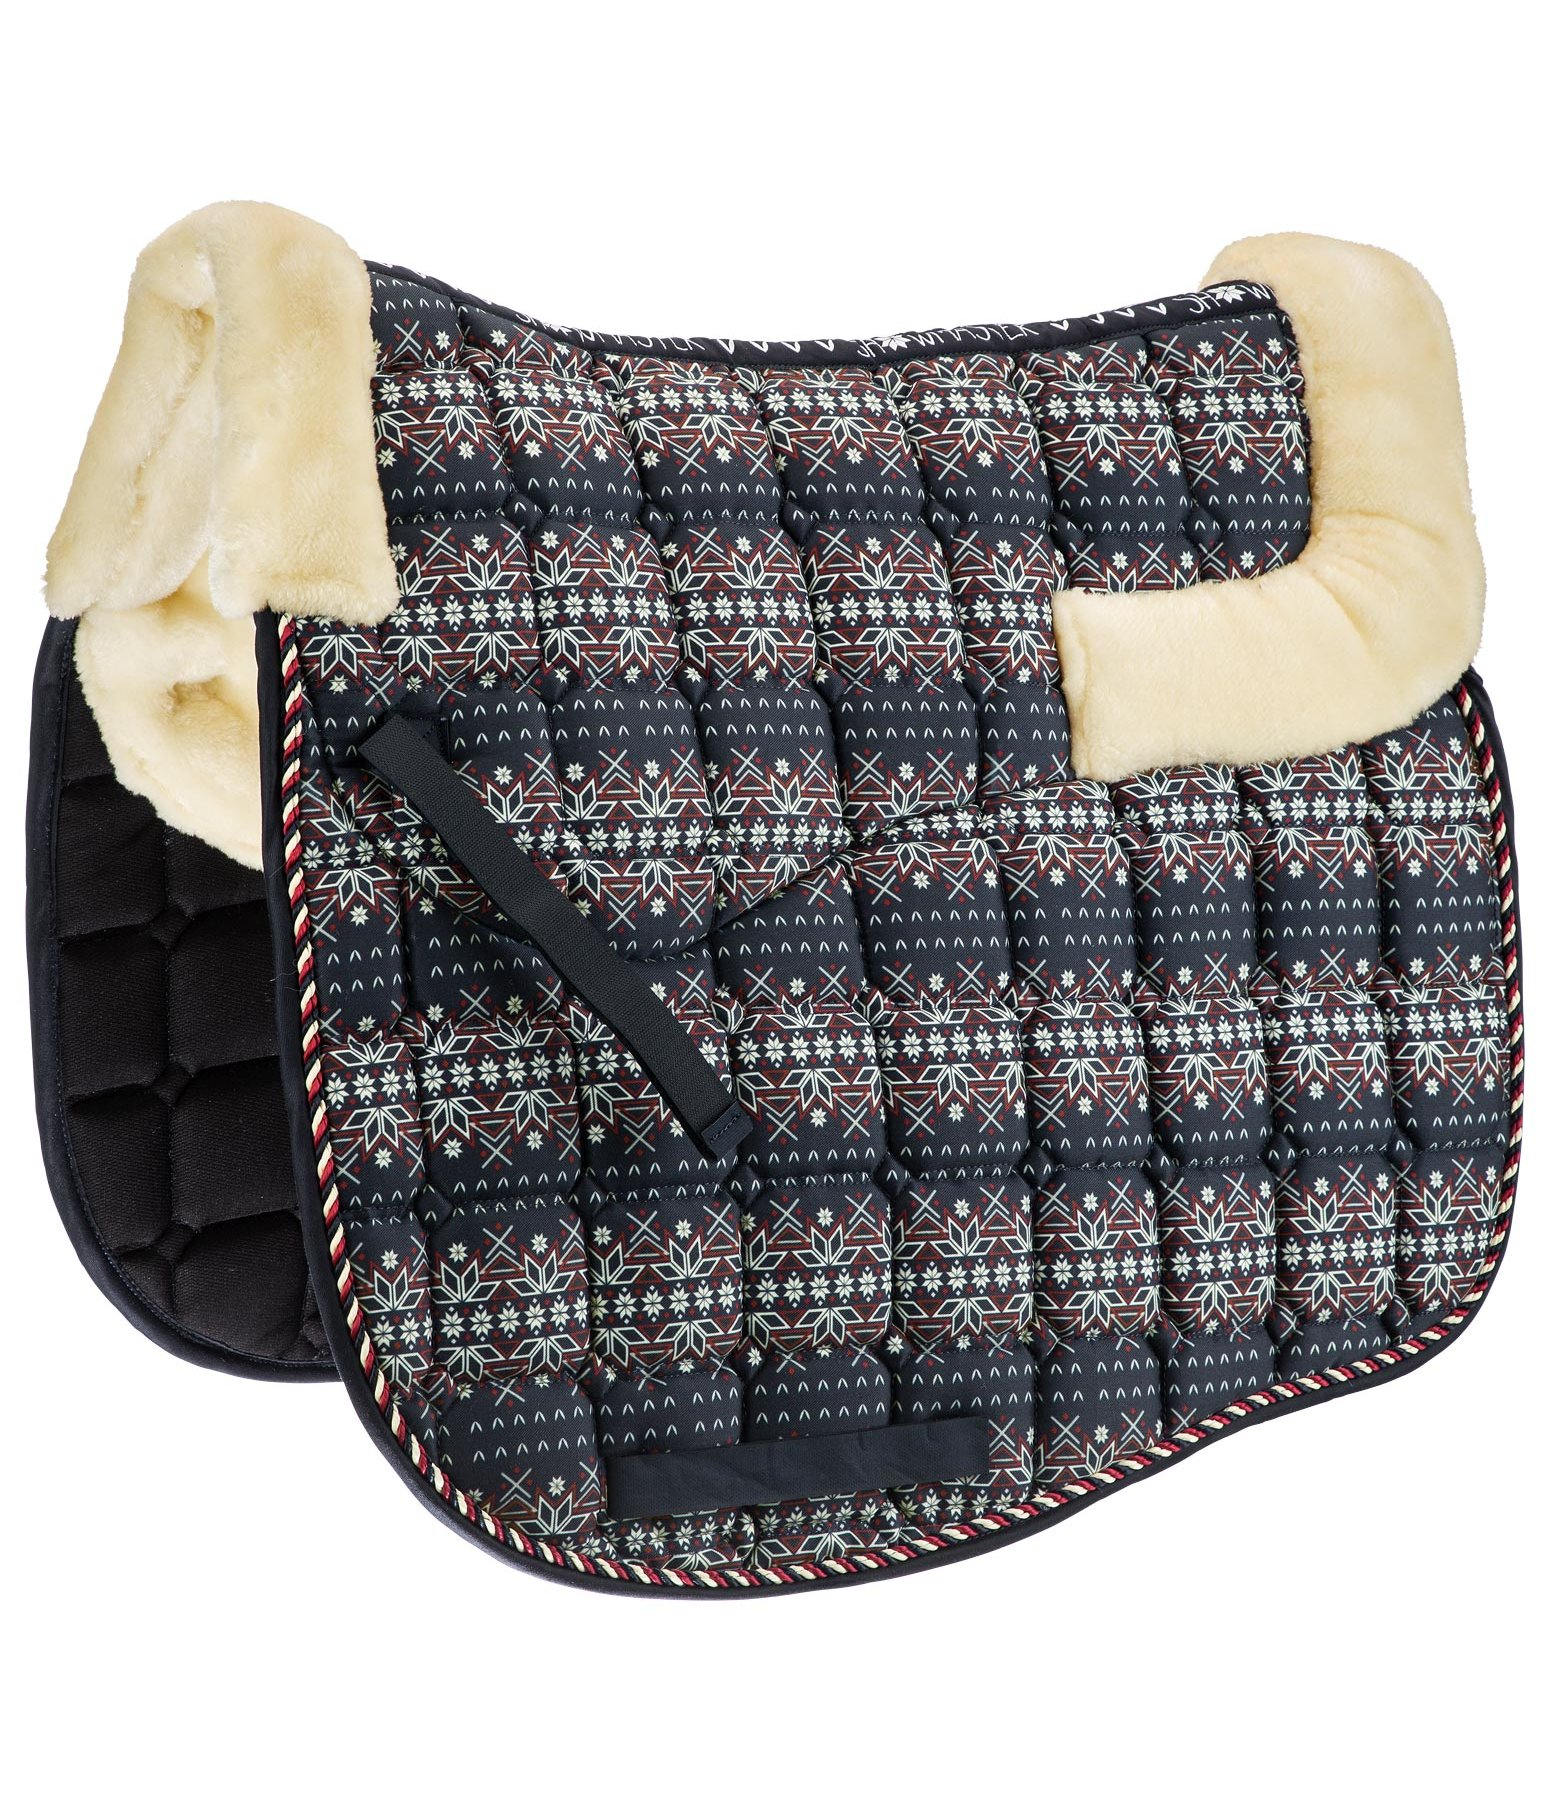 Teddy Fleece Saddle Pad Lovely Norway with All-over Print